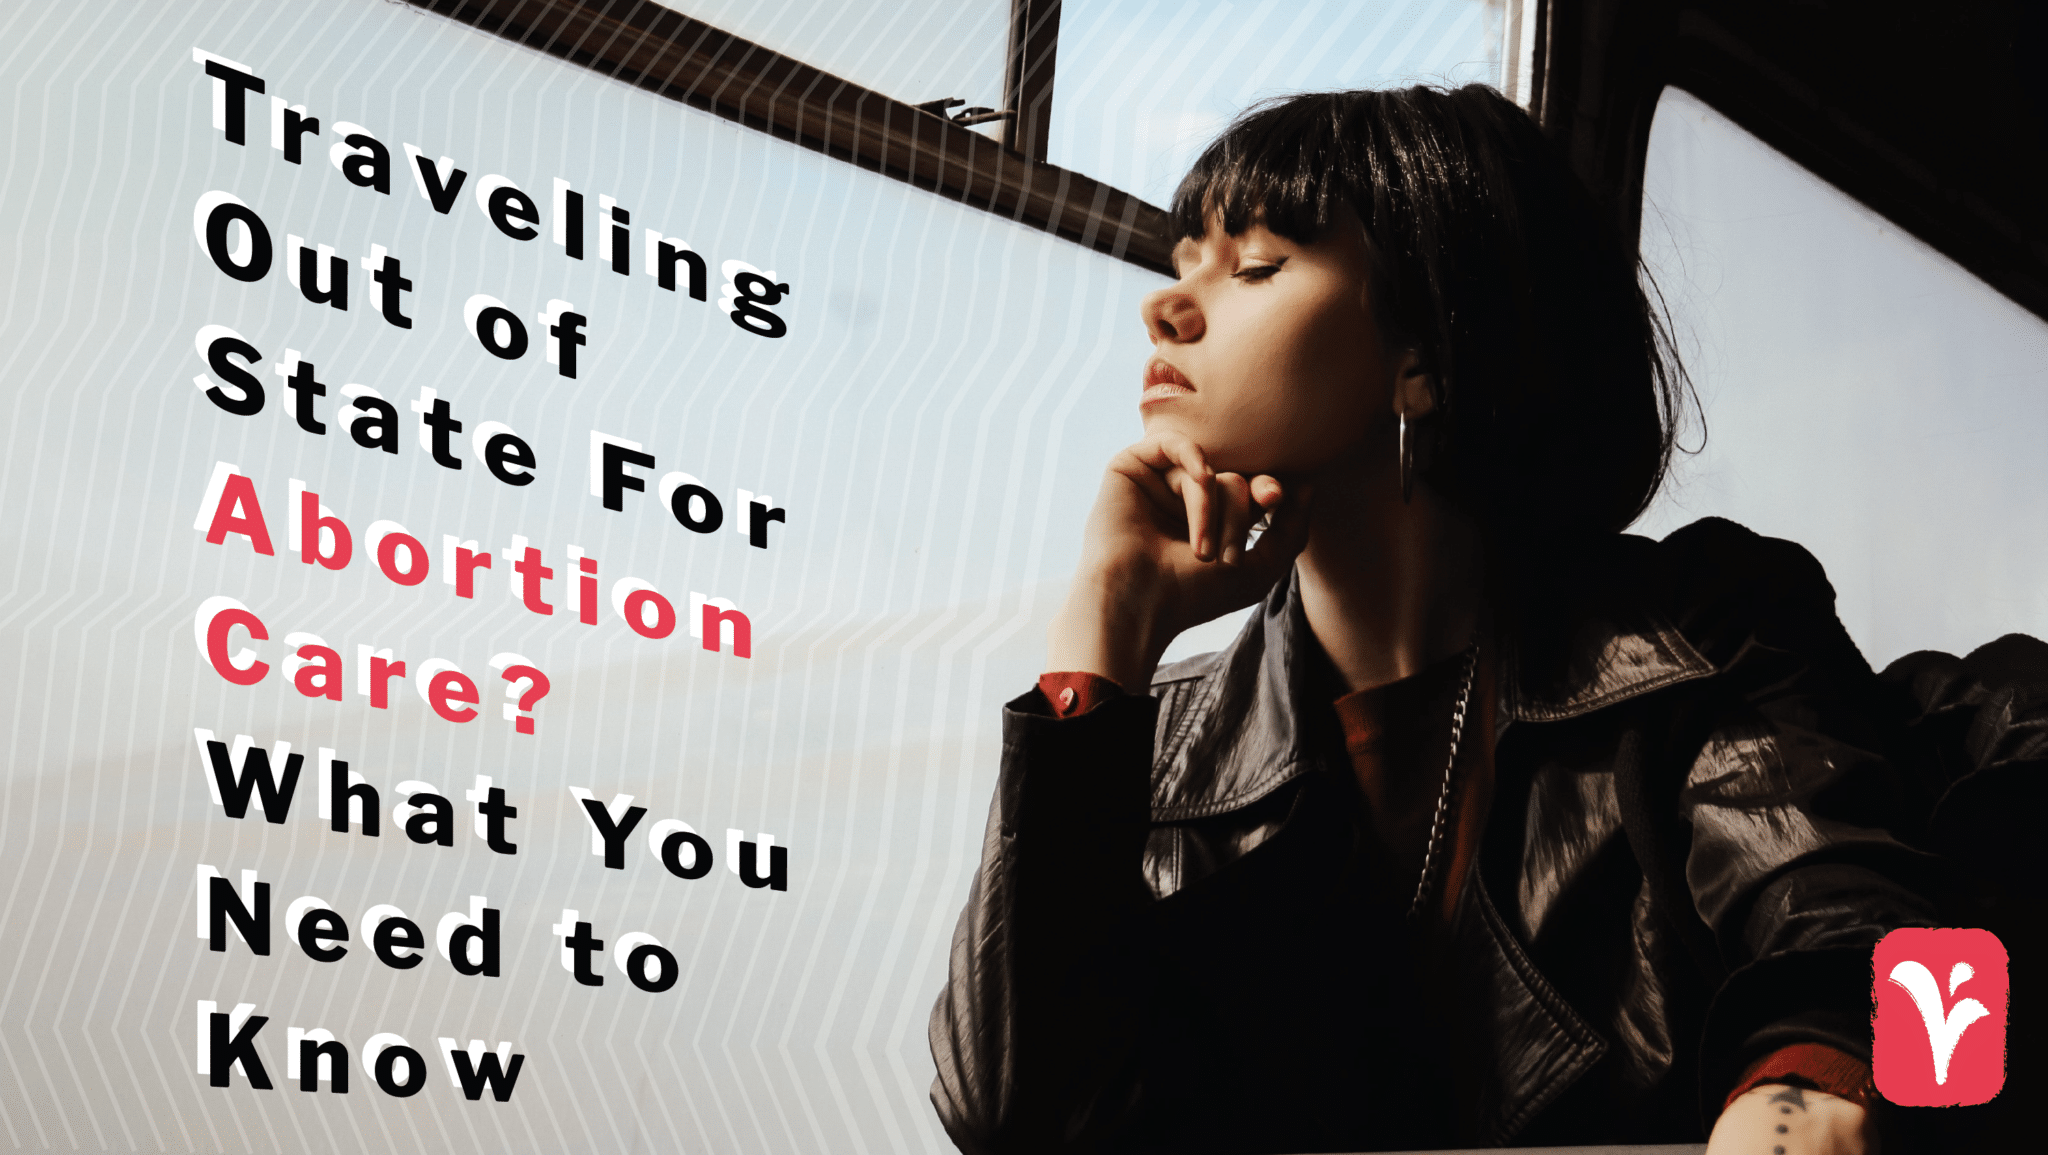 Traveling for Abortion Care